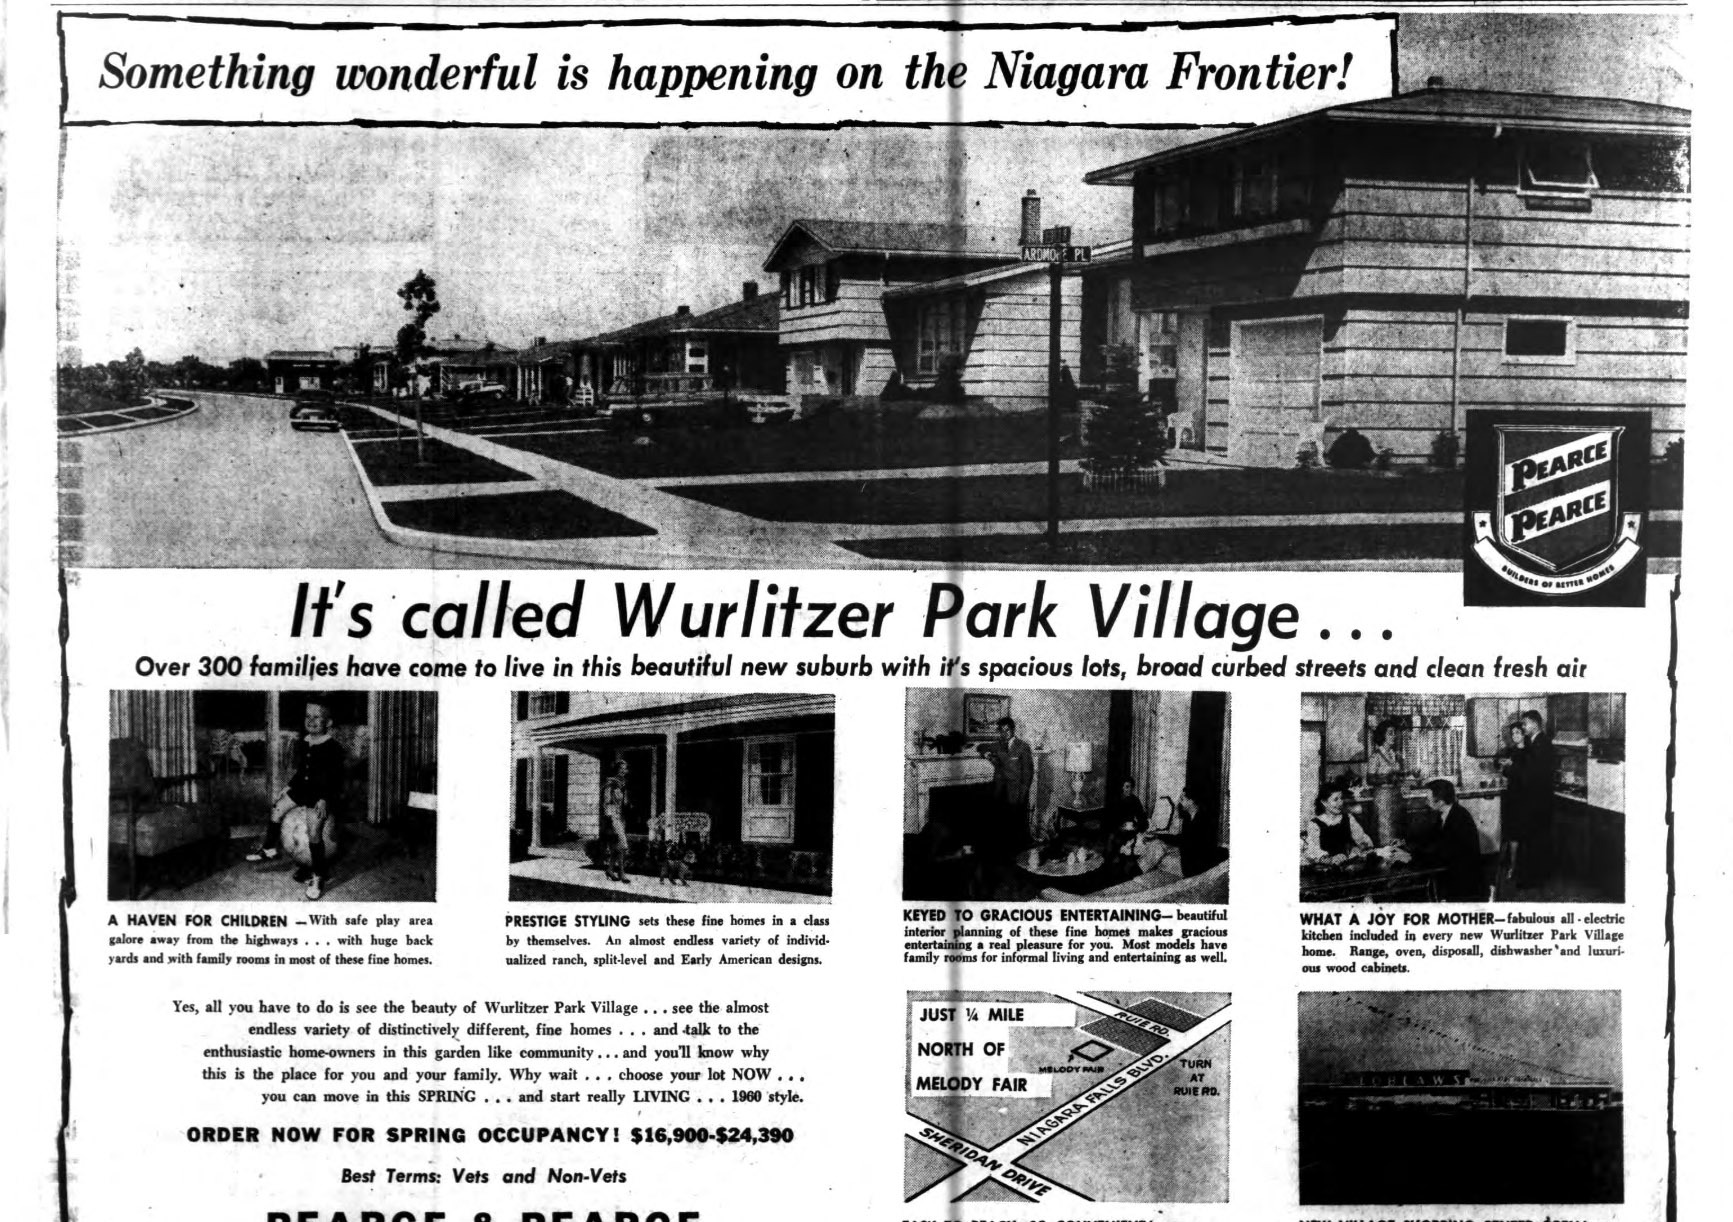 Wurlitzer Park, Pearce and Pearce, photo ad (Buffalo Courier-Express, 1960-01-24).jpg